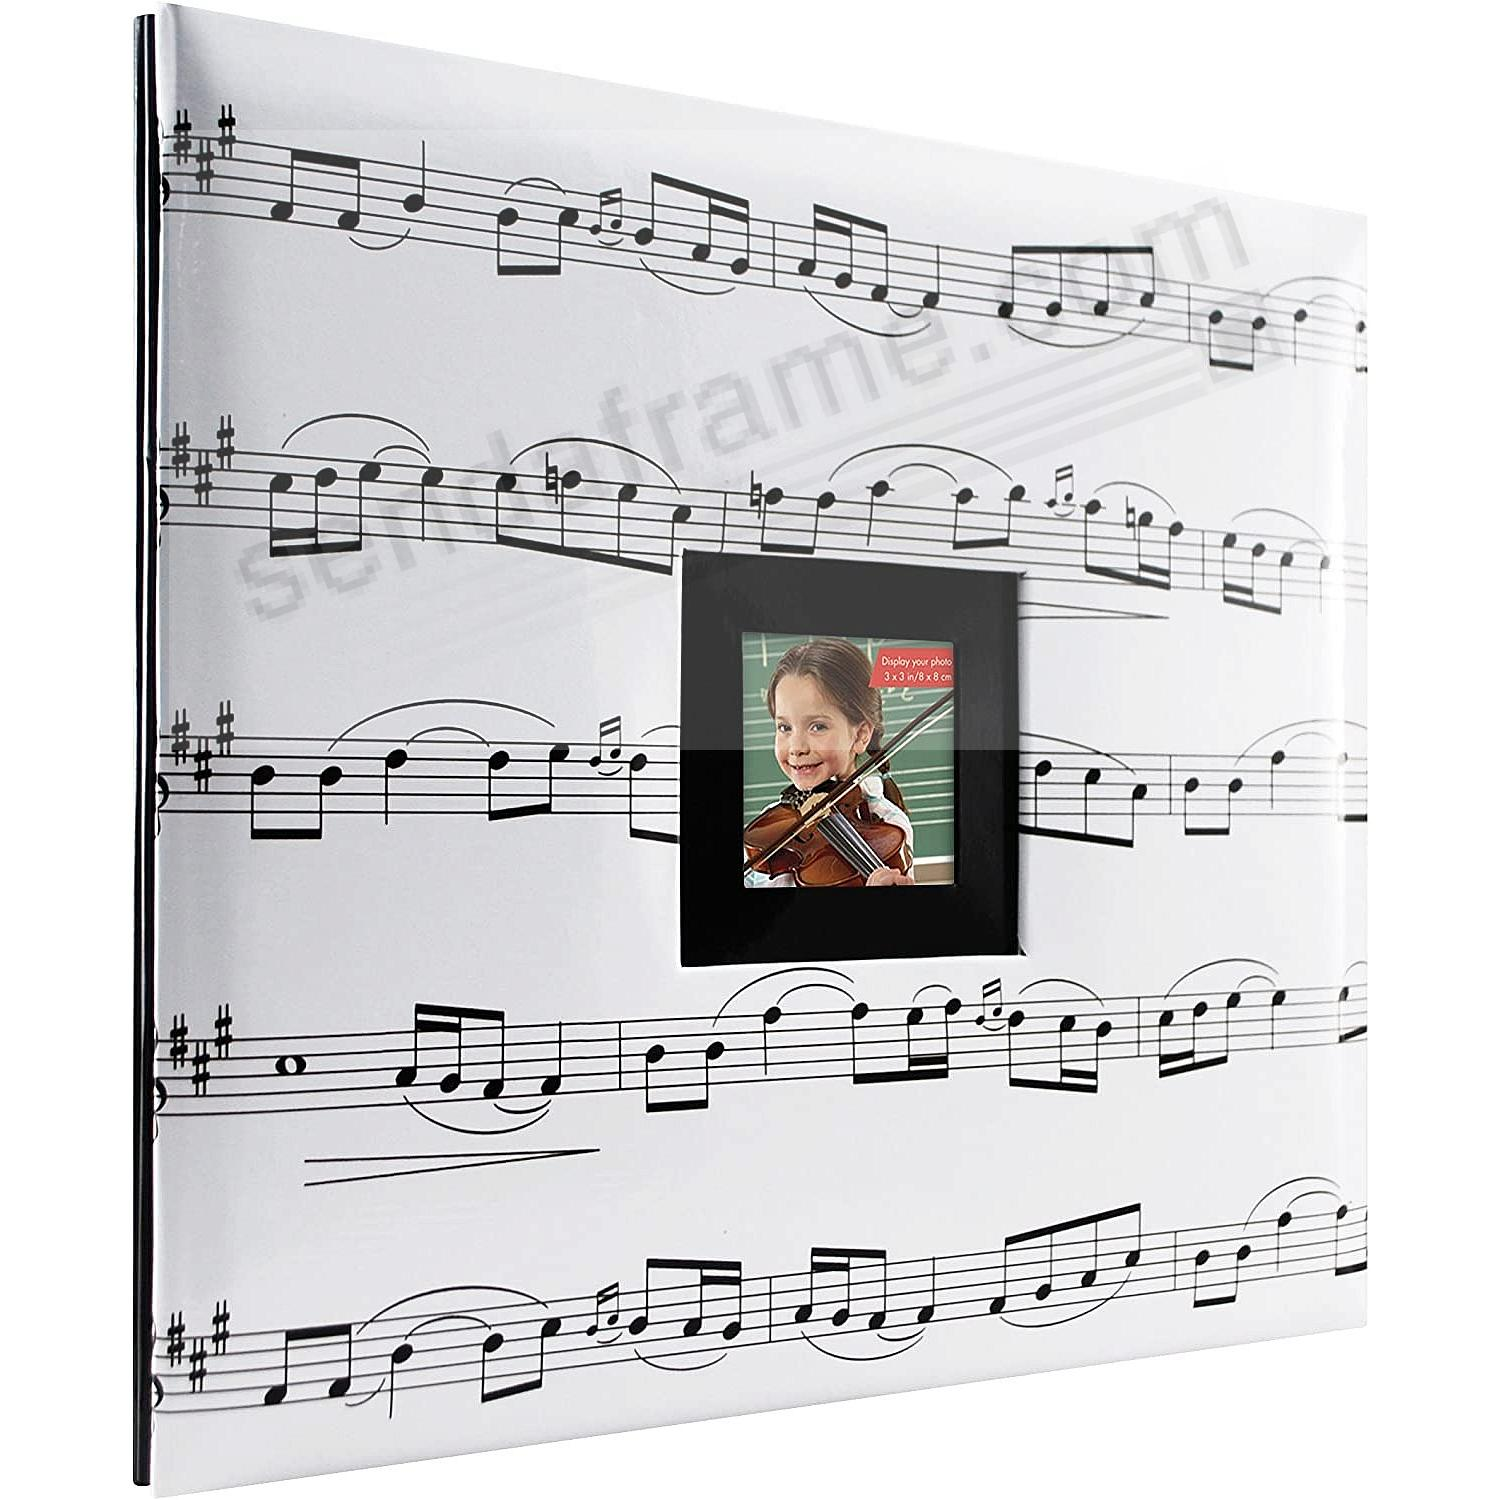 SHEET MUSIC Theme Post-Bound Album w/12x12 pocket pages